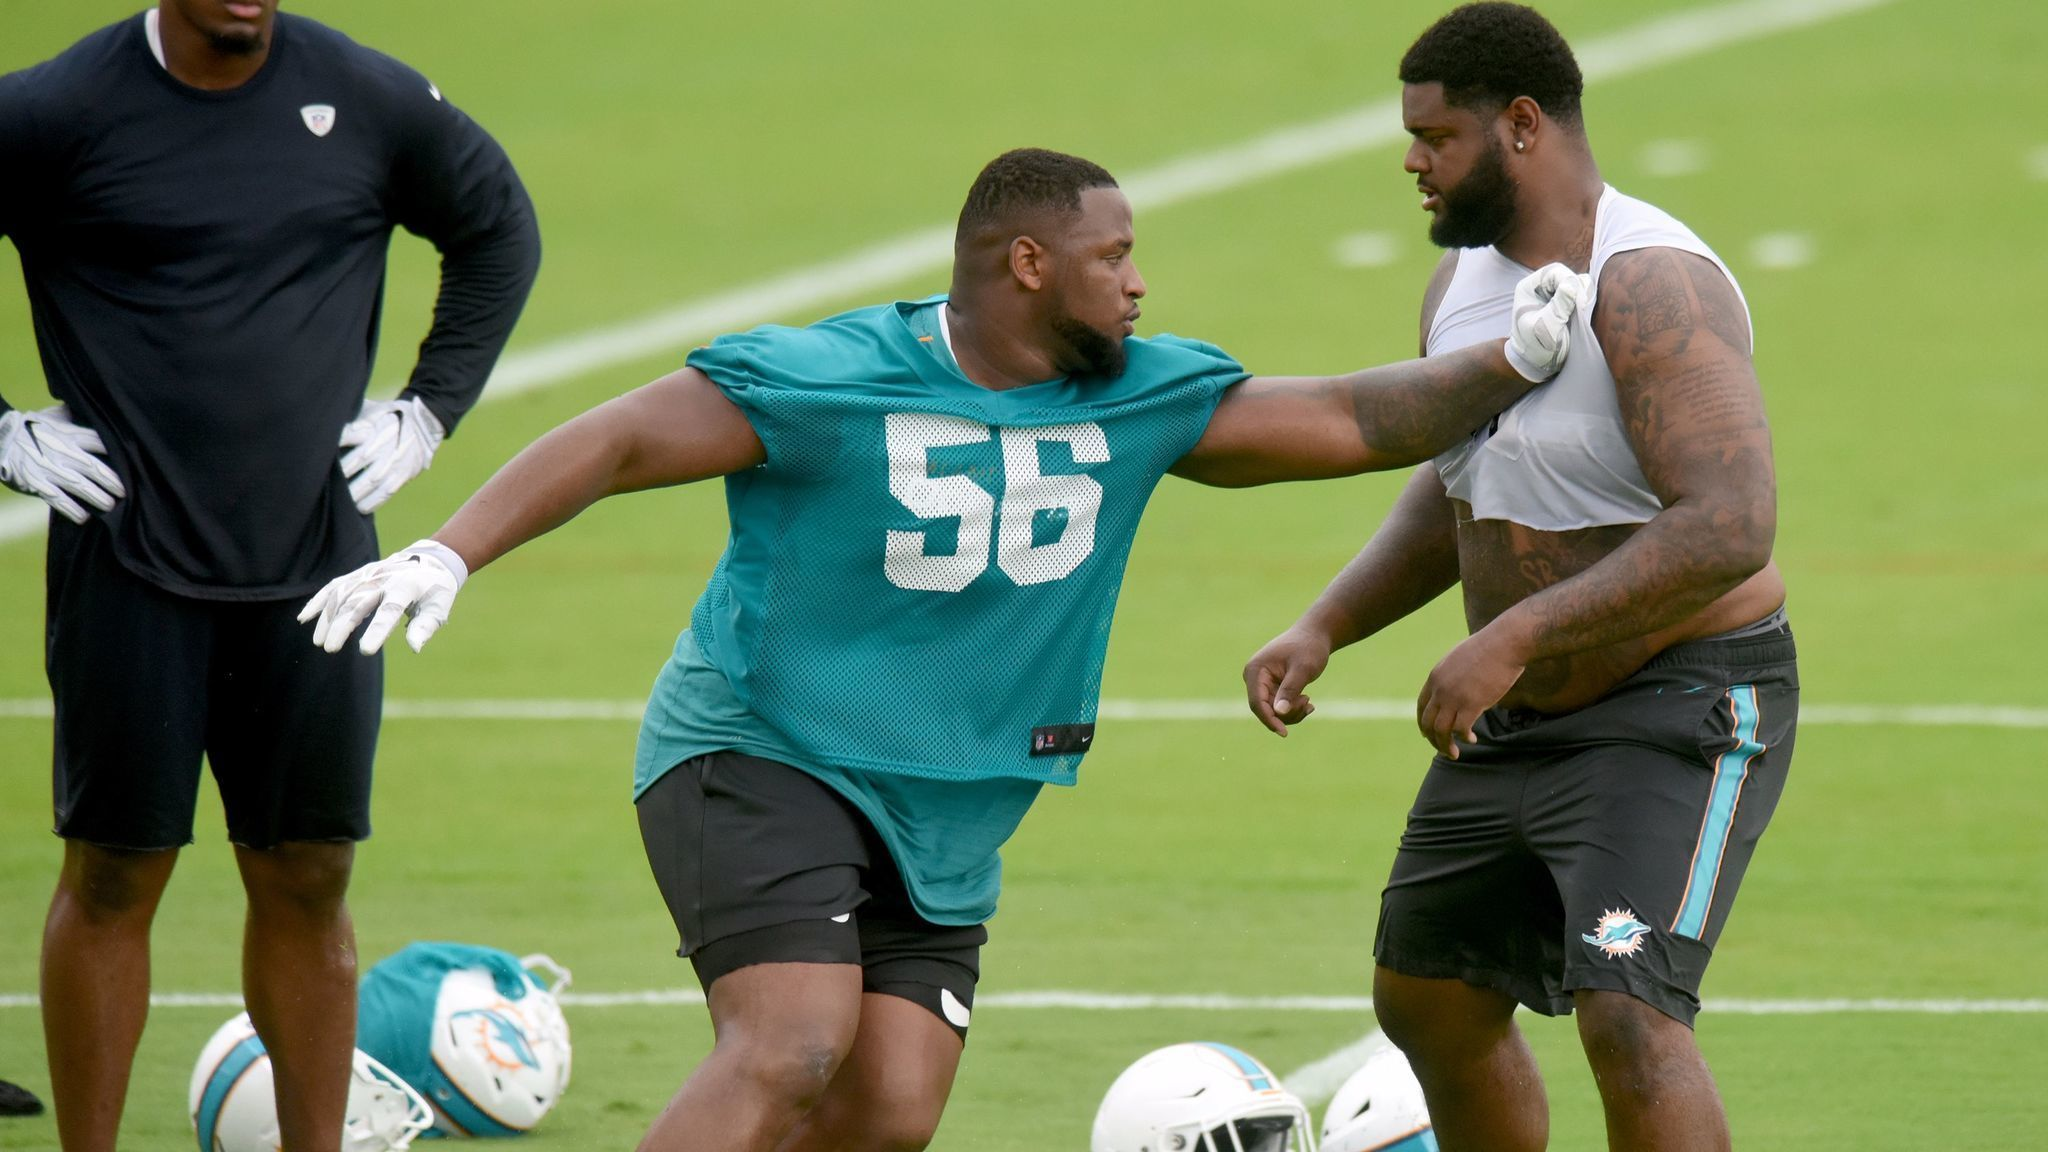 Dolphins rookie DT Davon Godchaux seemingly moving up depth chart ...